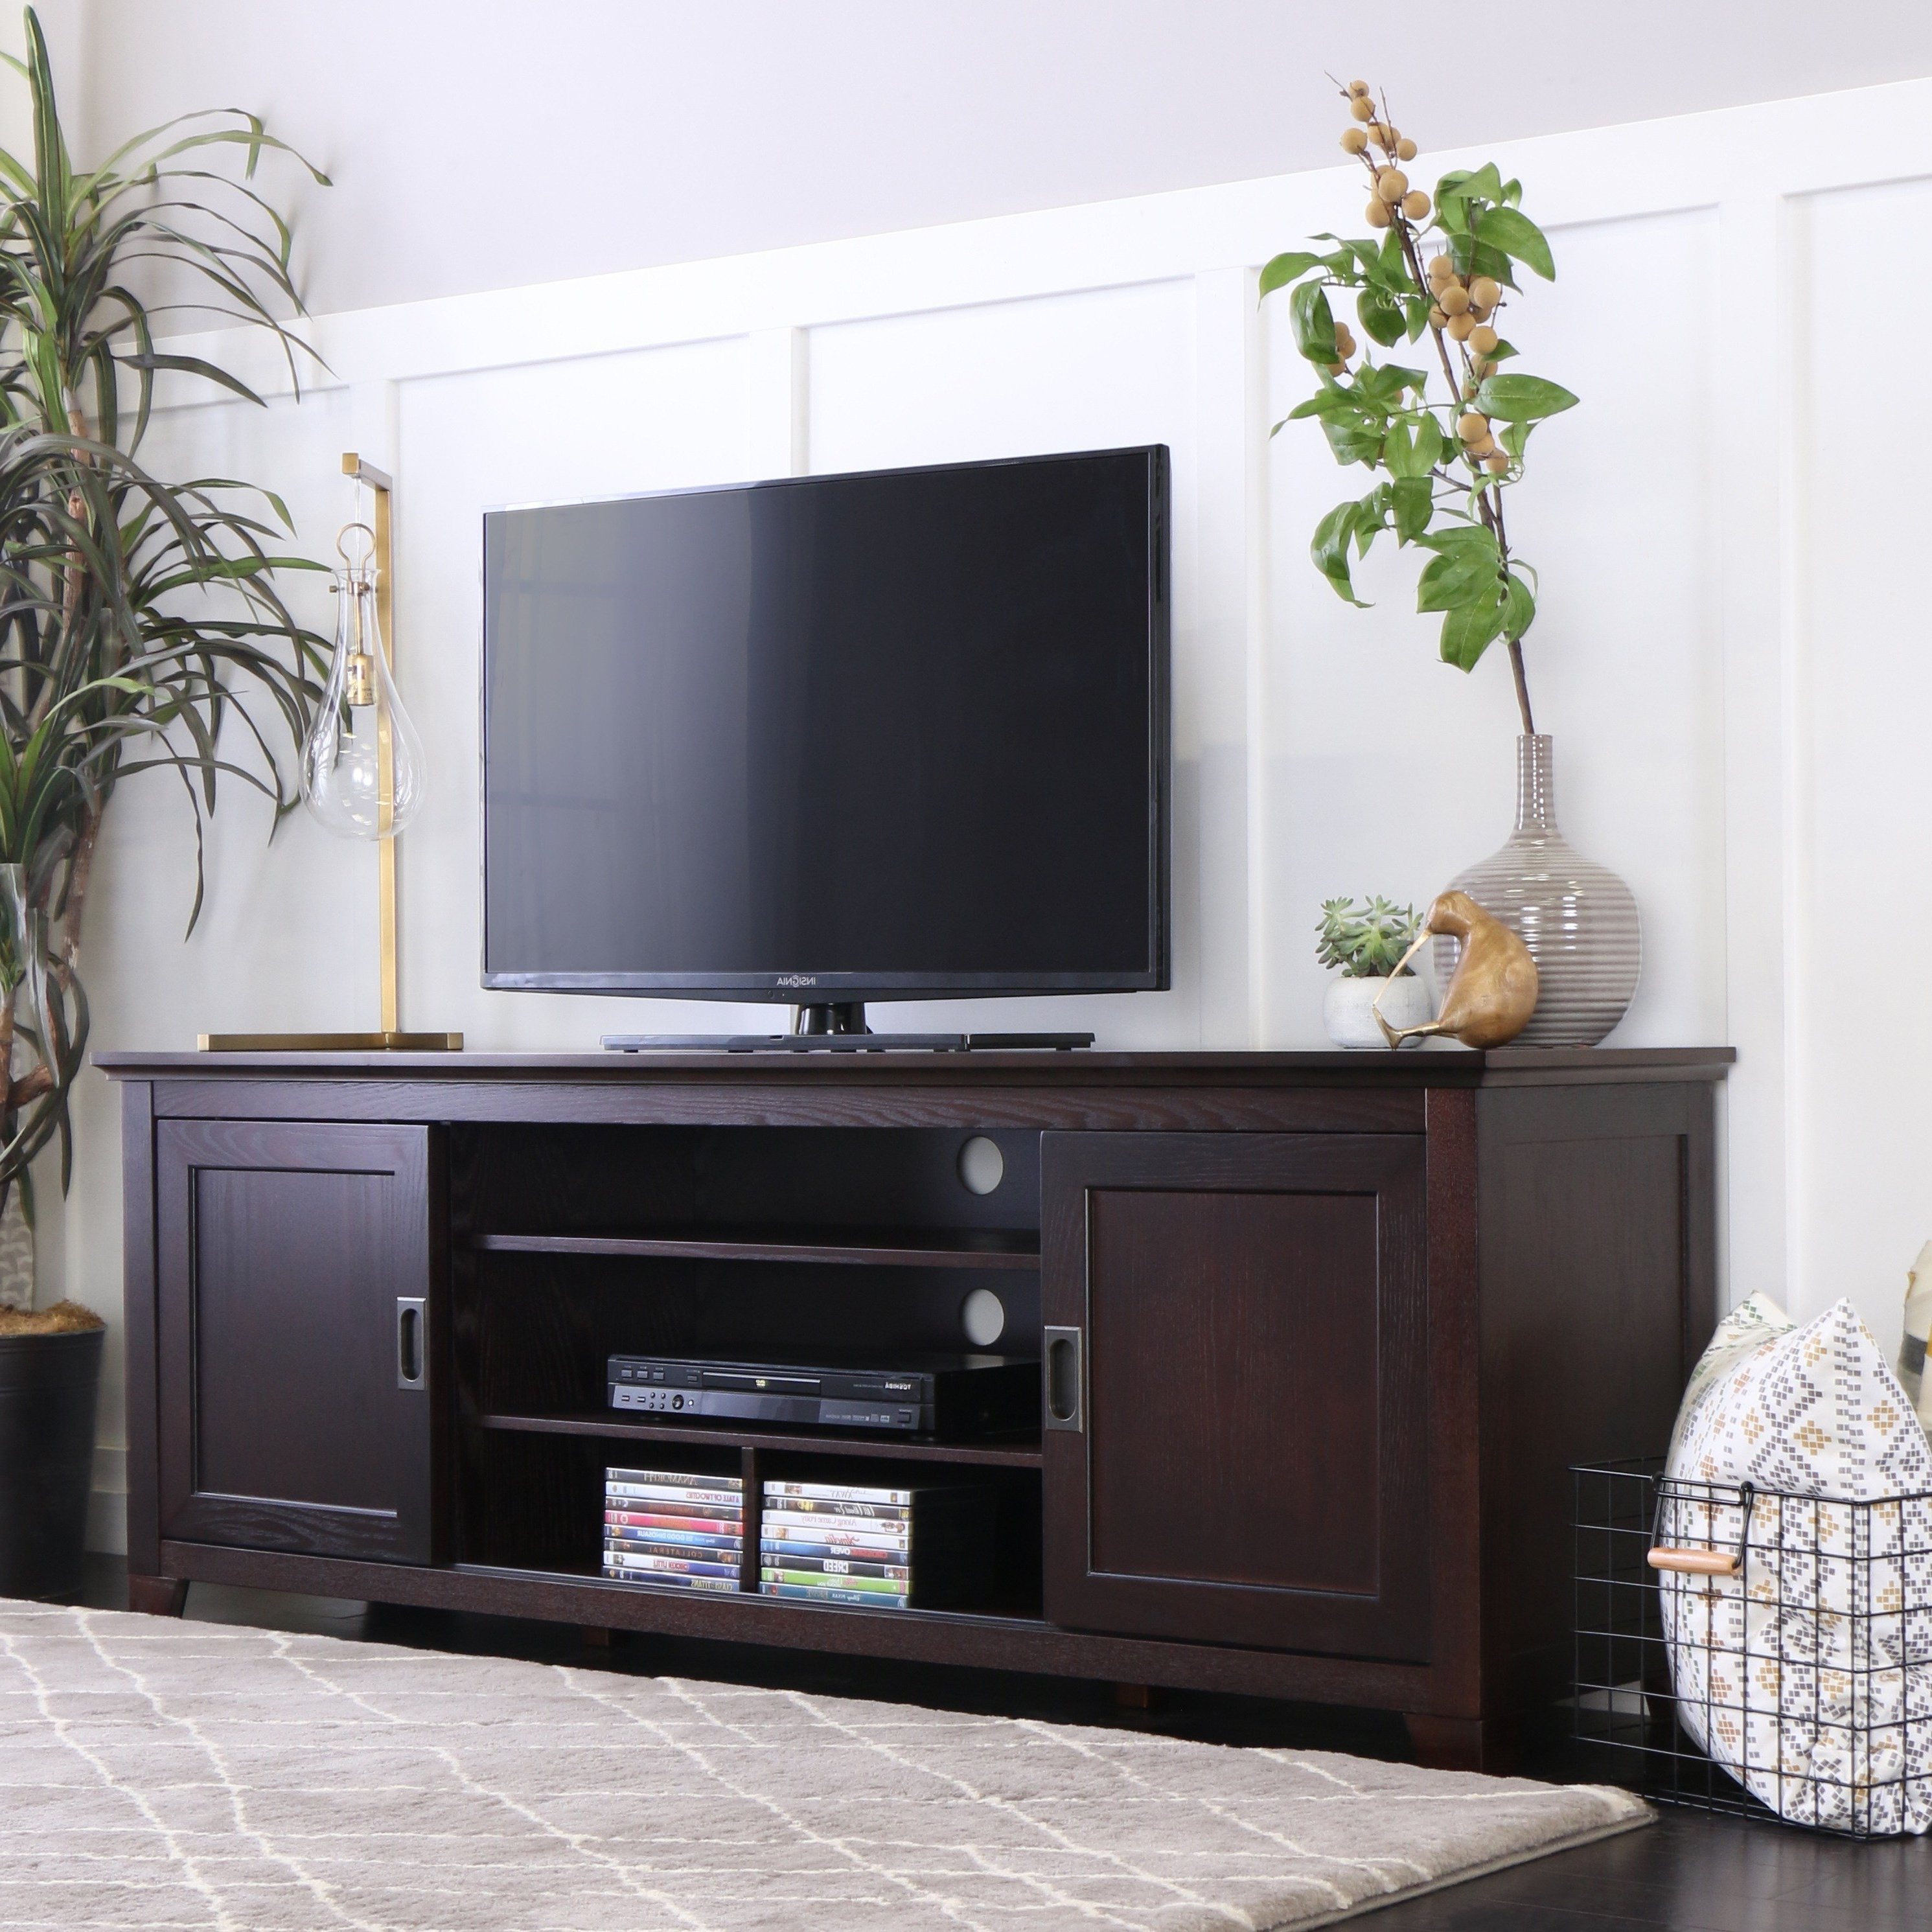 Wooden Tv Stands With Doors Inside Recent Shop 70 Inch Espresso Wood Tv Stand With Sliding Doors – Free (View 17 of 20)